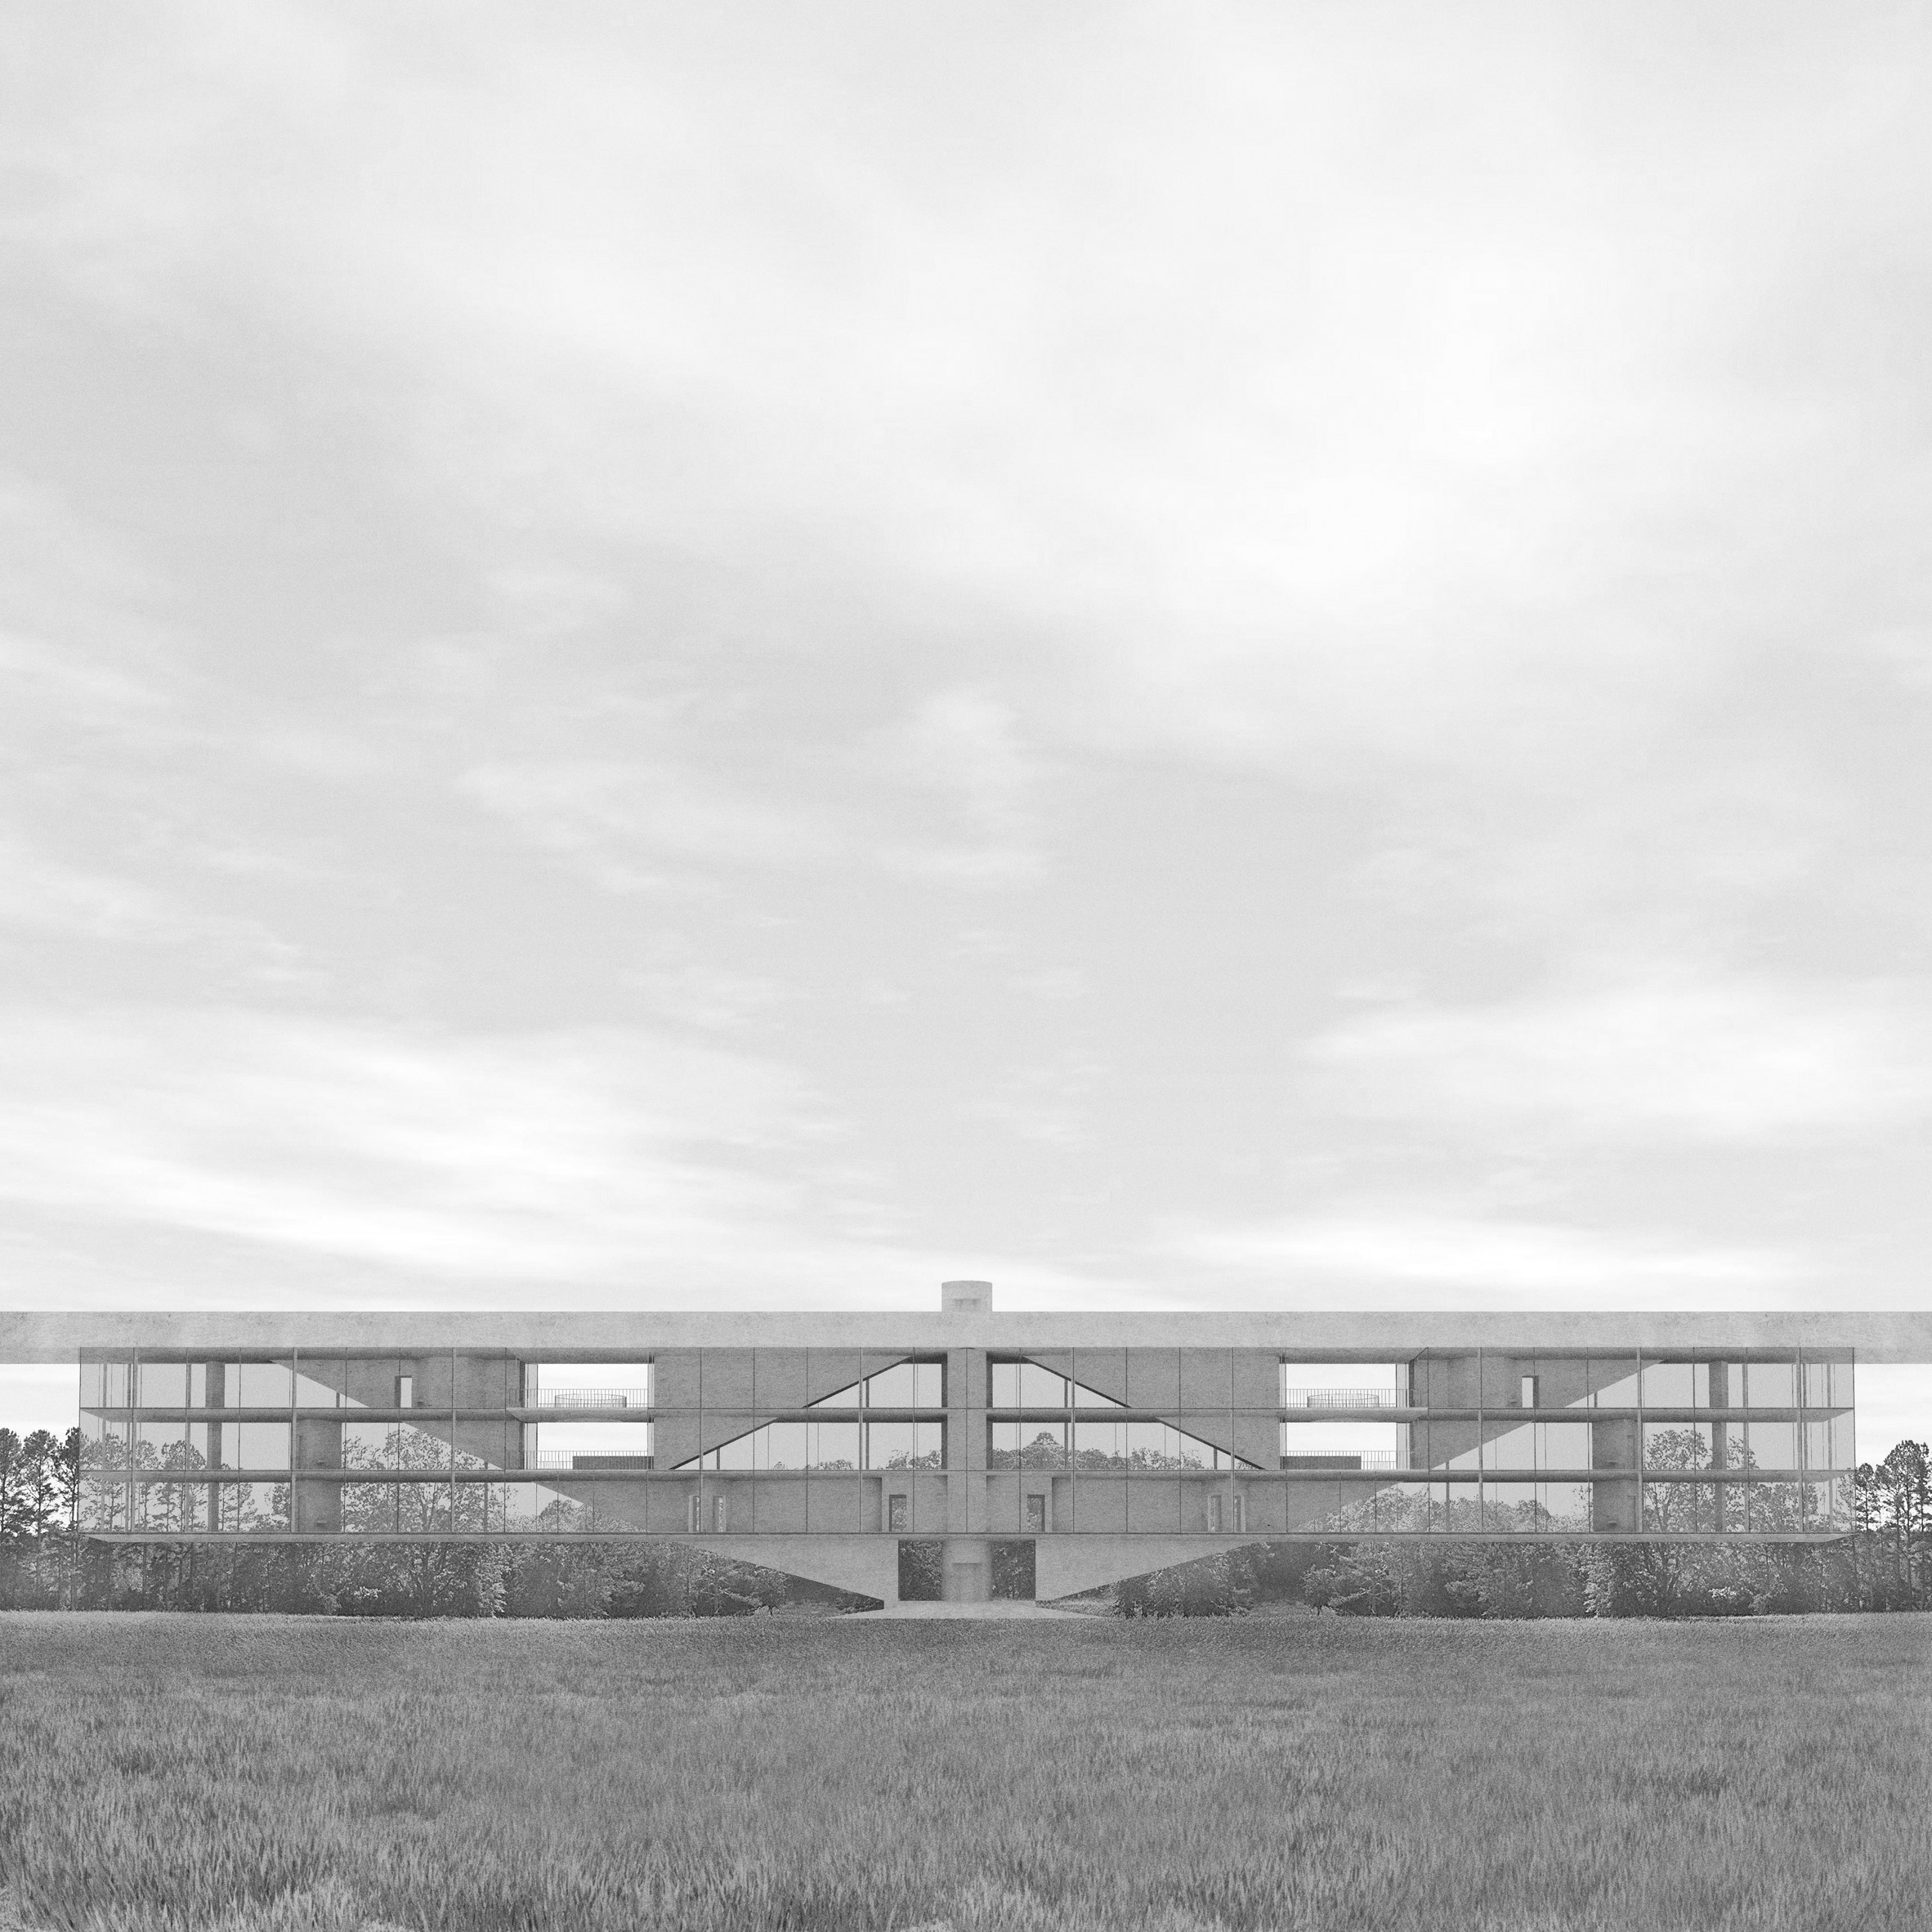 Llywelyn James proposes affordable cantilevered housing for London's brownfield sites